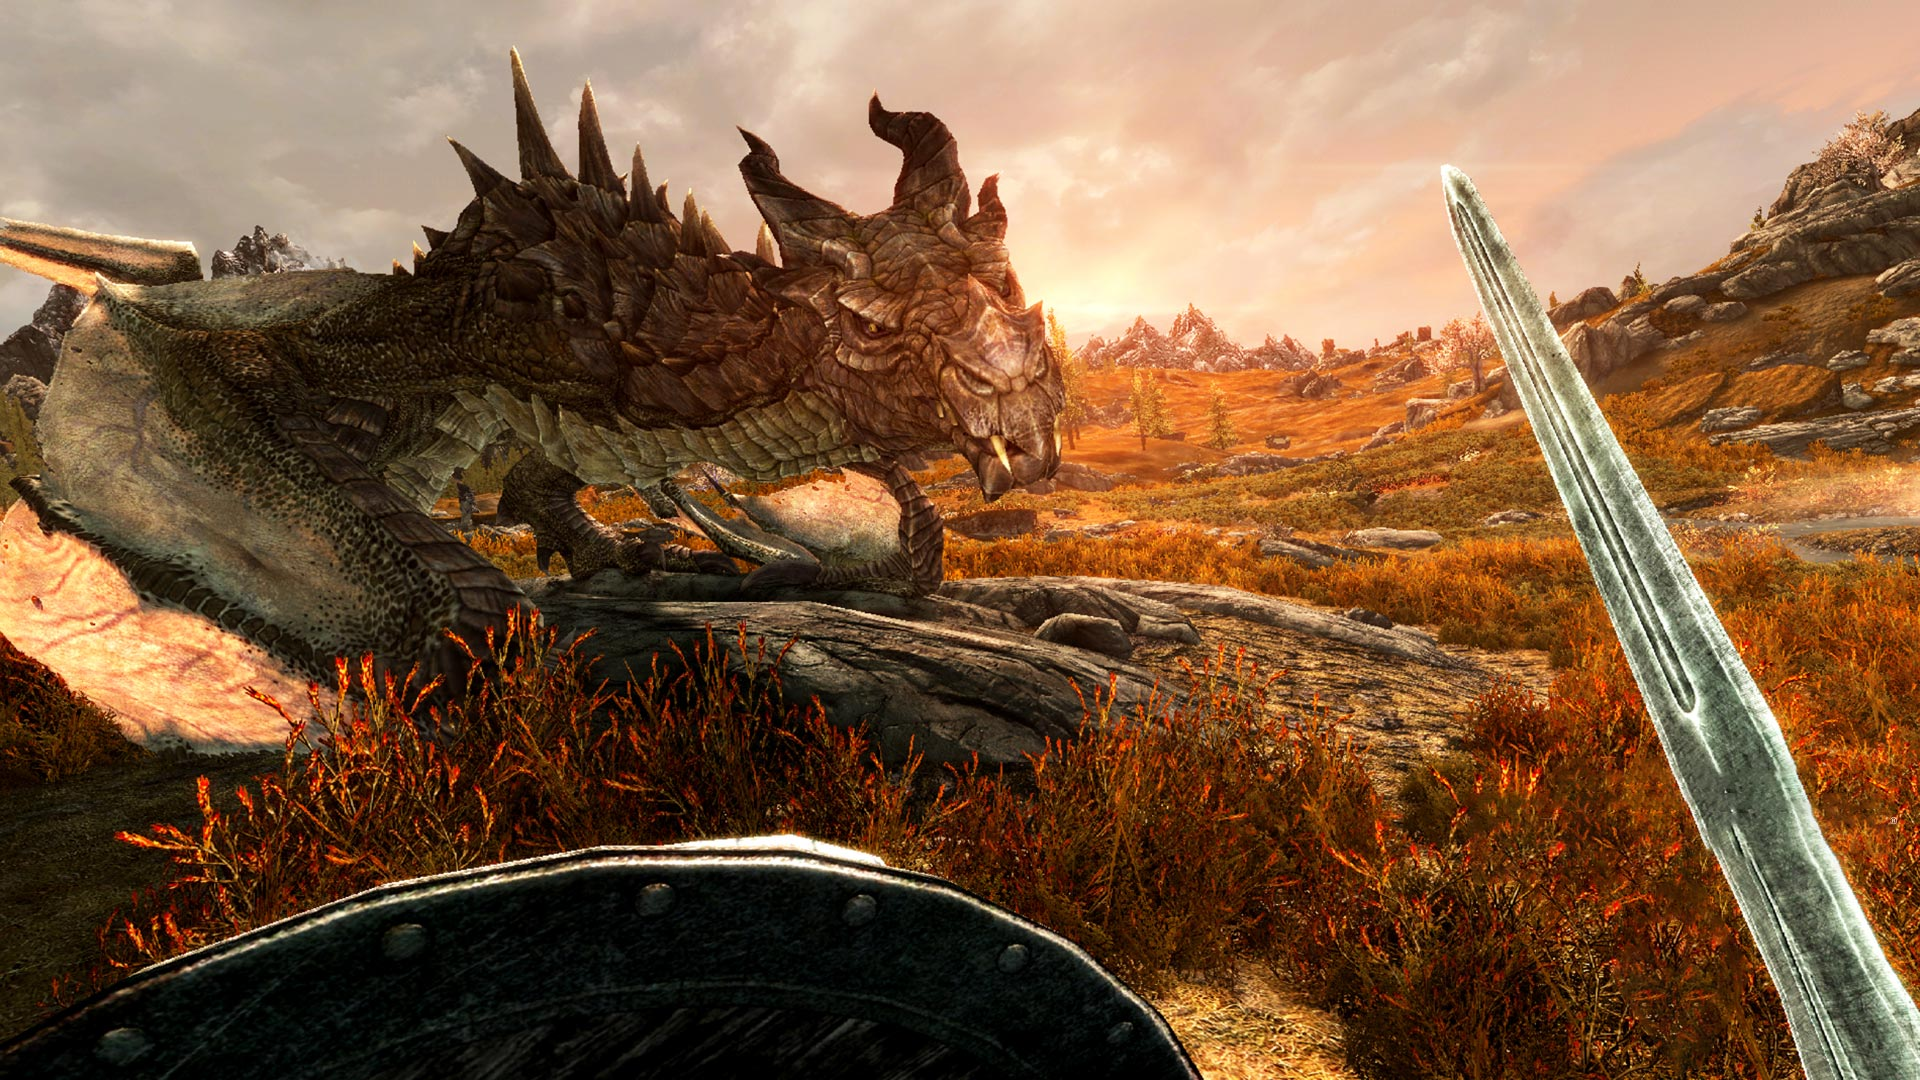 Skyrim VR' for PC (Vive, Rift, & Windows VR) Review – a Dragon-sized